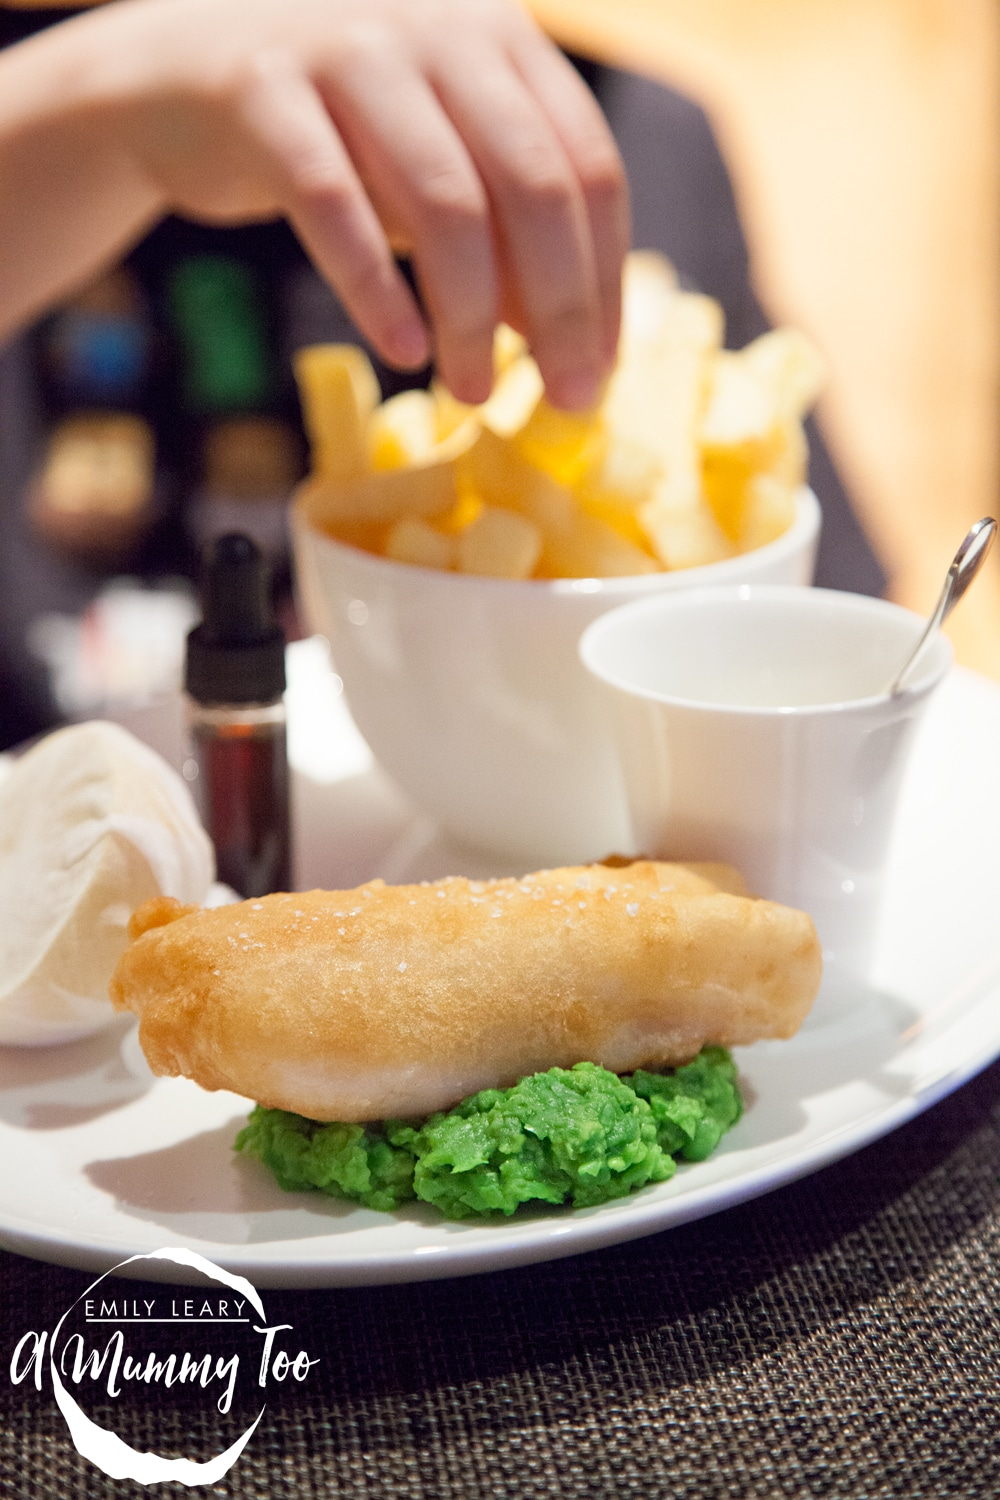 One-Aldwych-Indigo-Restaurant-kids-fish